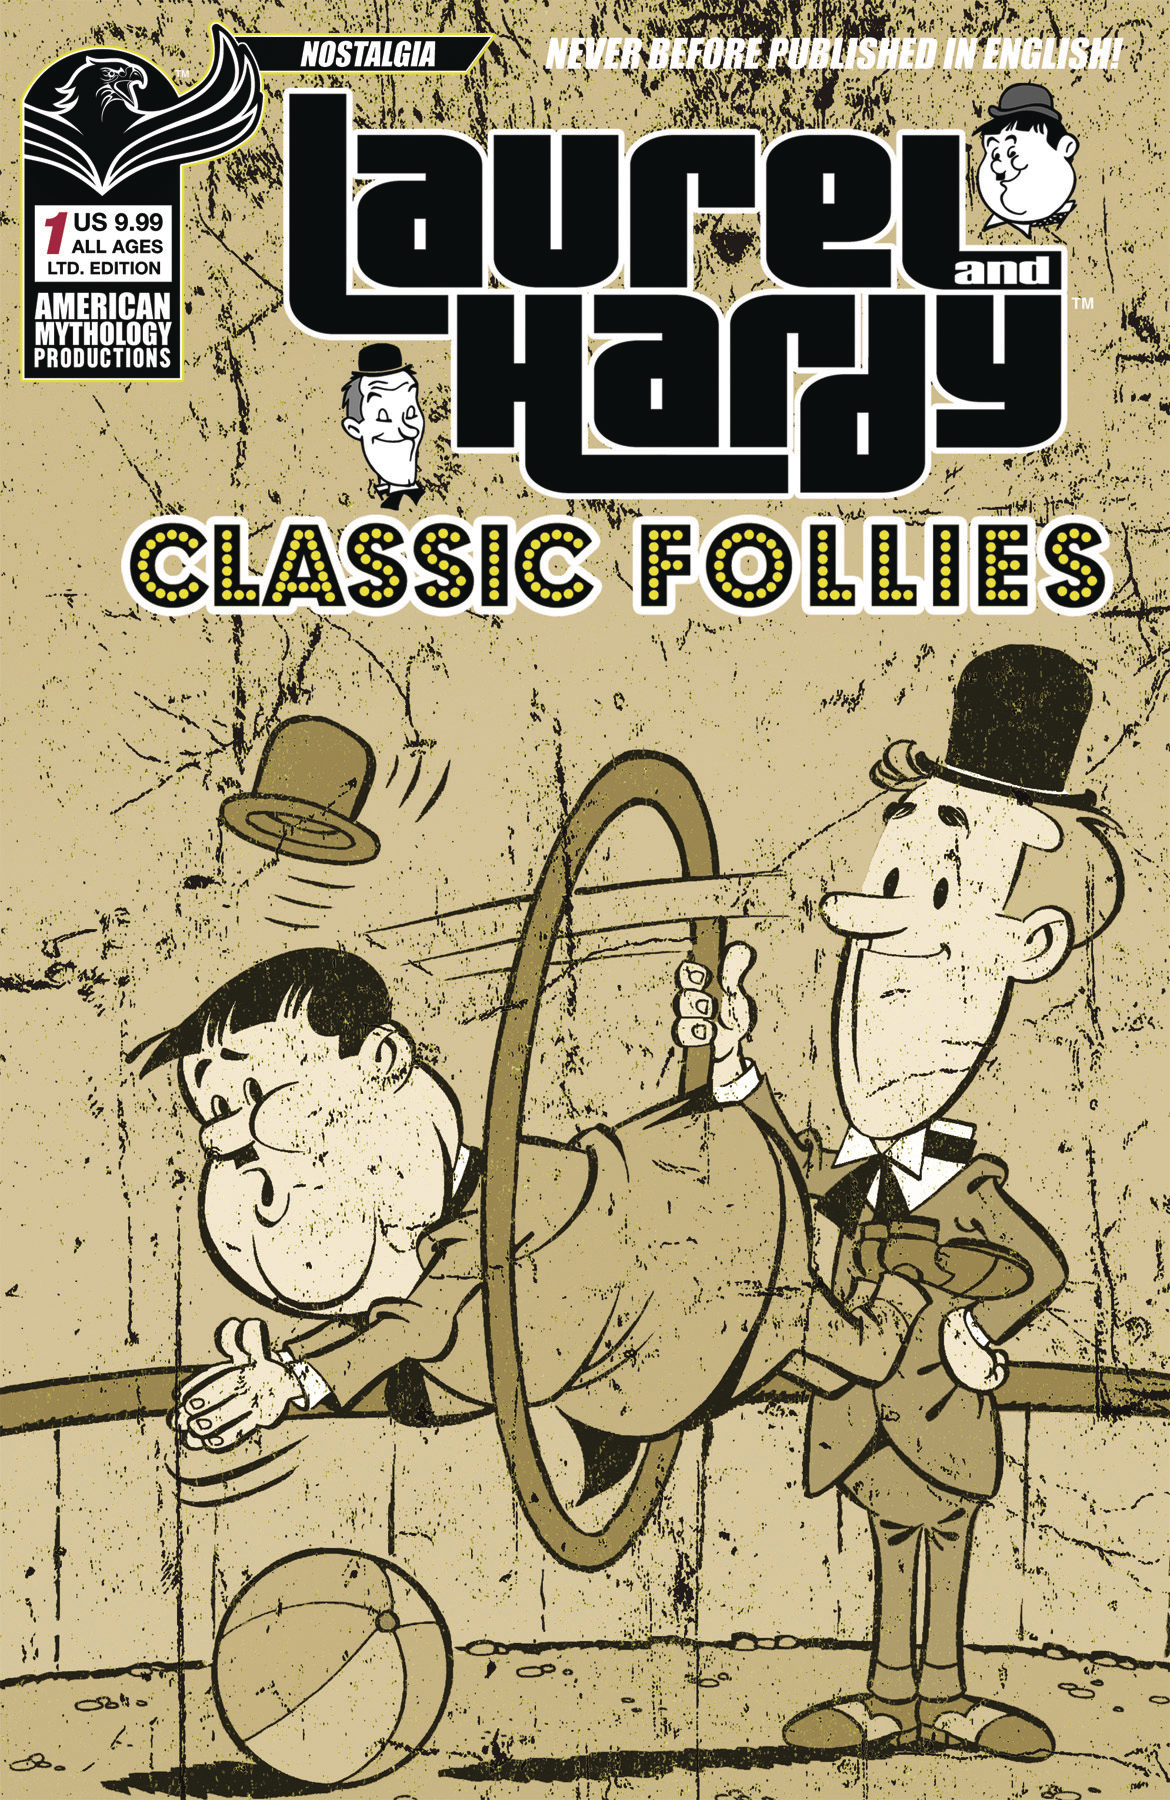 LAUREL & HARDY CLASSIC FOLLIES #1 LTD ED CVR